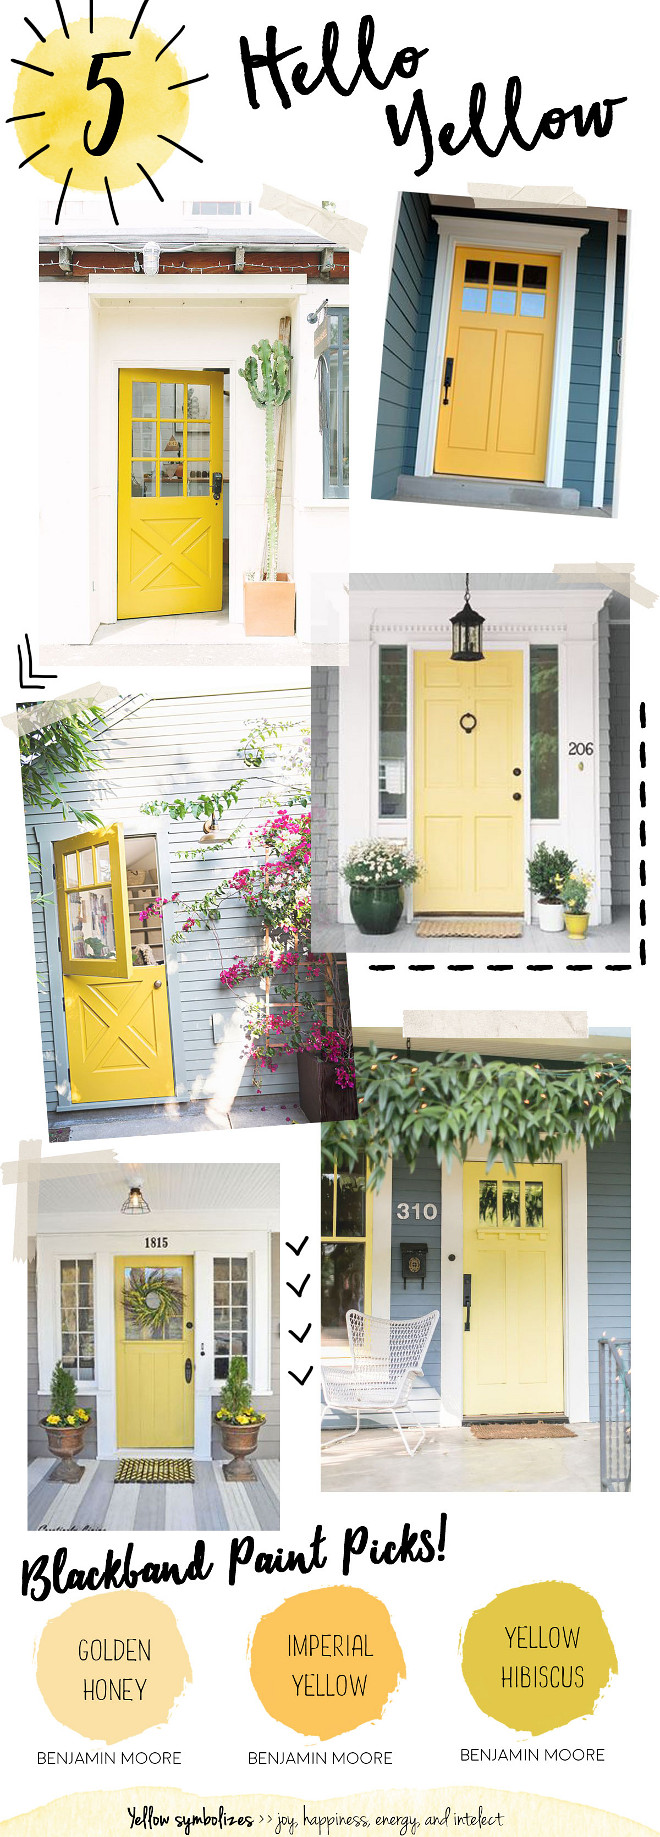 Yellow Door Paint Color. Yellow Front Door Paint Color. Benjamin Moore Golden Honey. Benjamin Moore Imperial Yellow. Benjamin Moore Yellow Hibiscus. Yellow is a cheerful way to welcome guests into your home. Representing the sun, a bright shade of yellow can bring happiness, warmth and energy to your front door. This color is best suited for exteriors with neutral tones like whites, grays, and shades of brown. #BenjaminMooreGoldenHoney #BenjaminMooreImperialYellow #BenjaminMooreYellowHibiscus